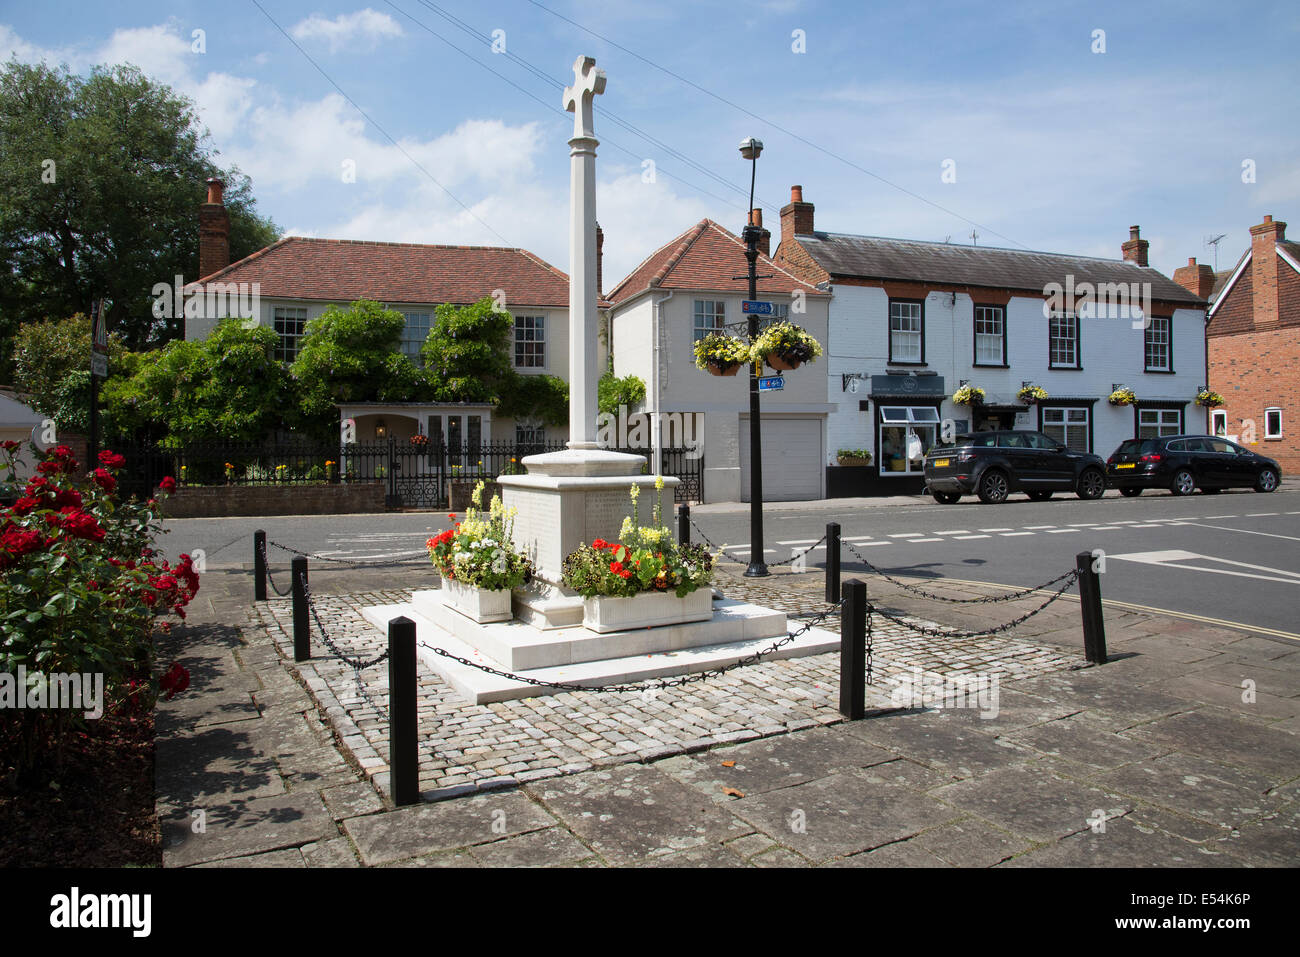 War memorial and housing in the Thameside village of Bray in Berkshire England UK - Stock Image